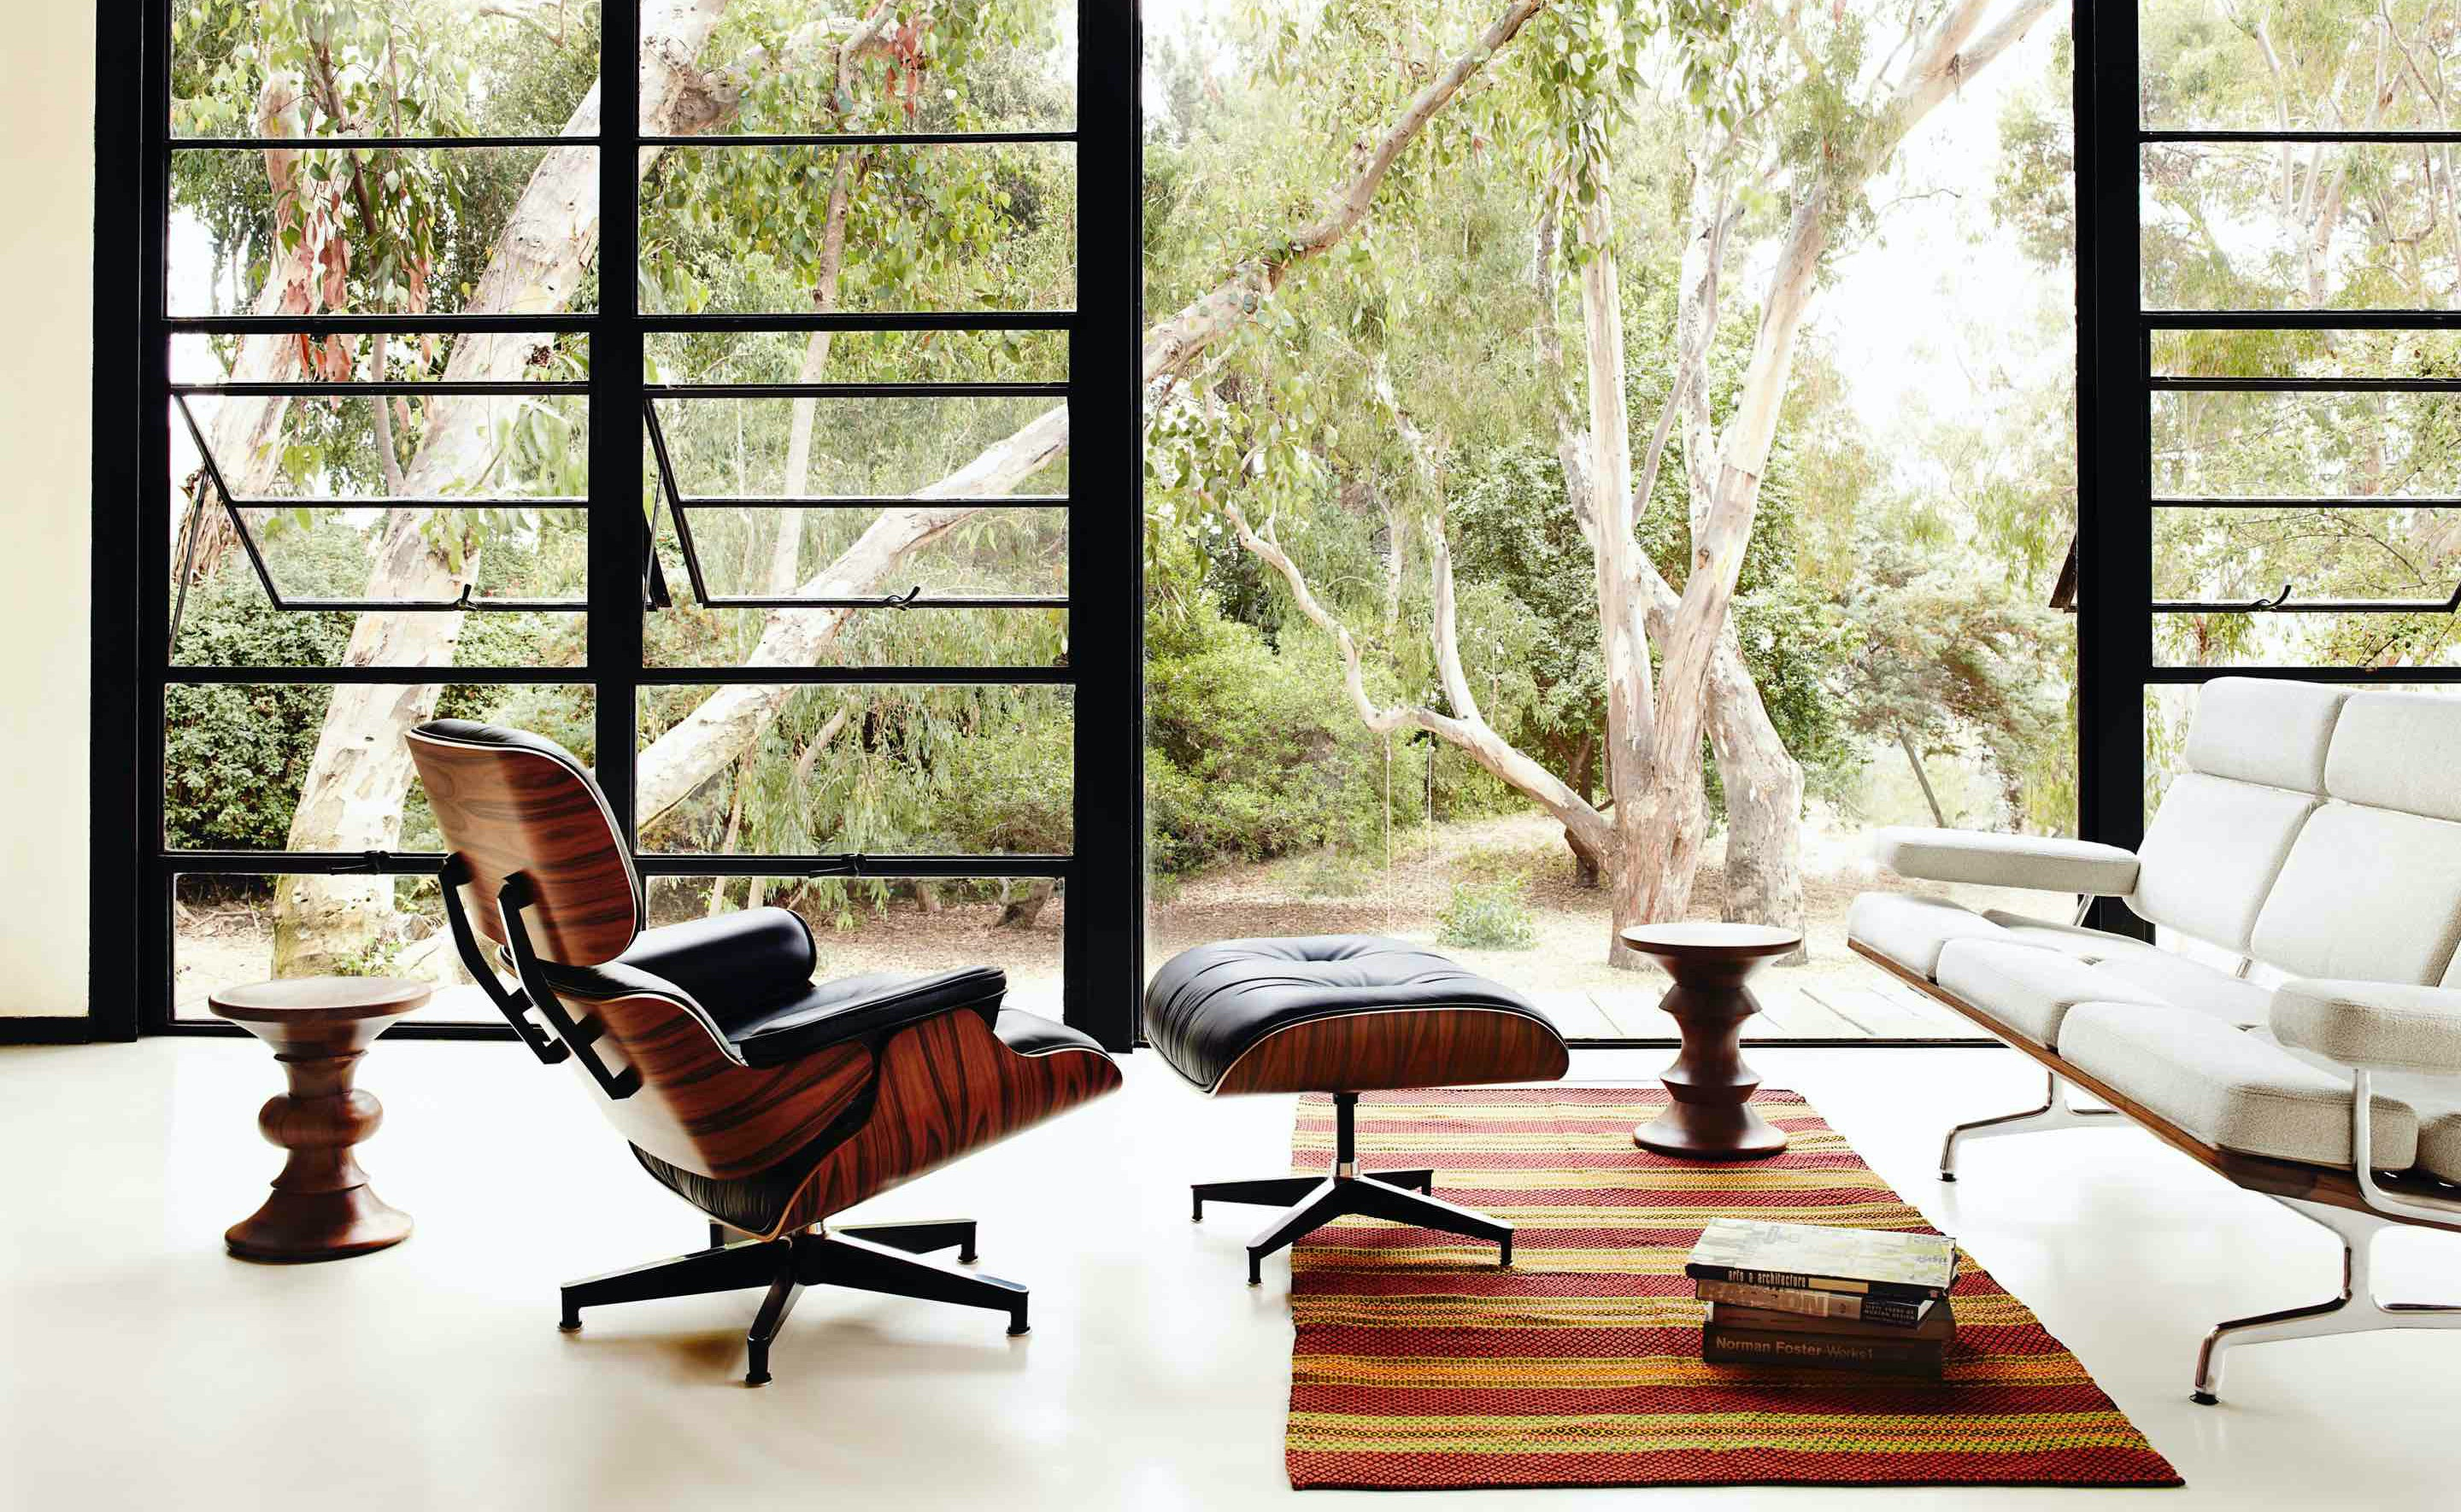 Design within reachs 2018 herman miller sale has the most luxurious eames lounge chair for 15 percent off